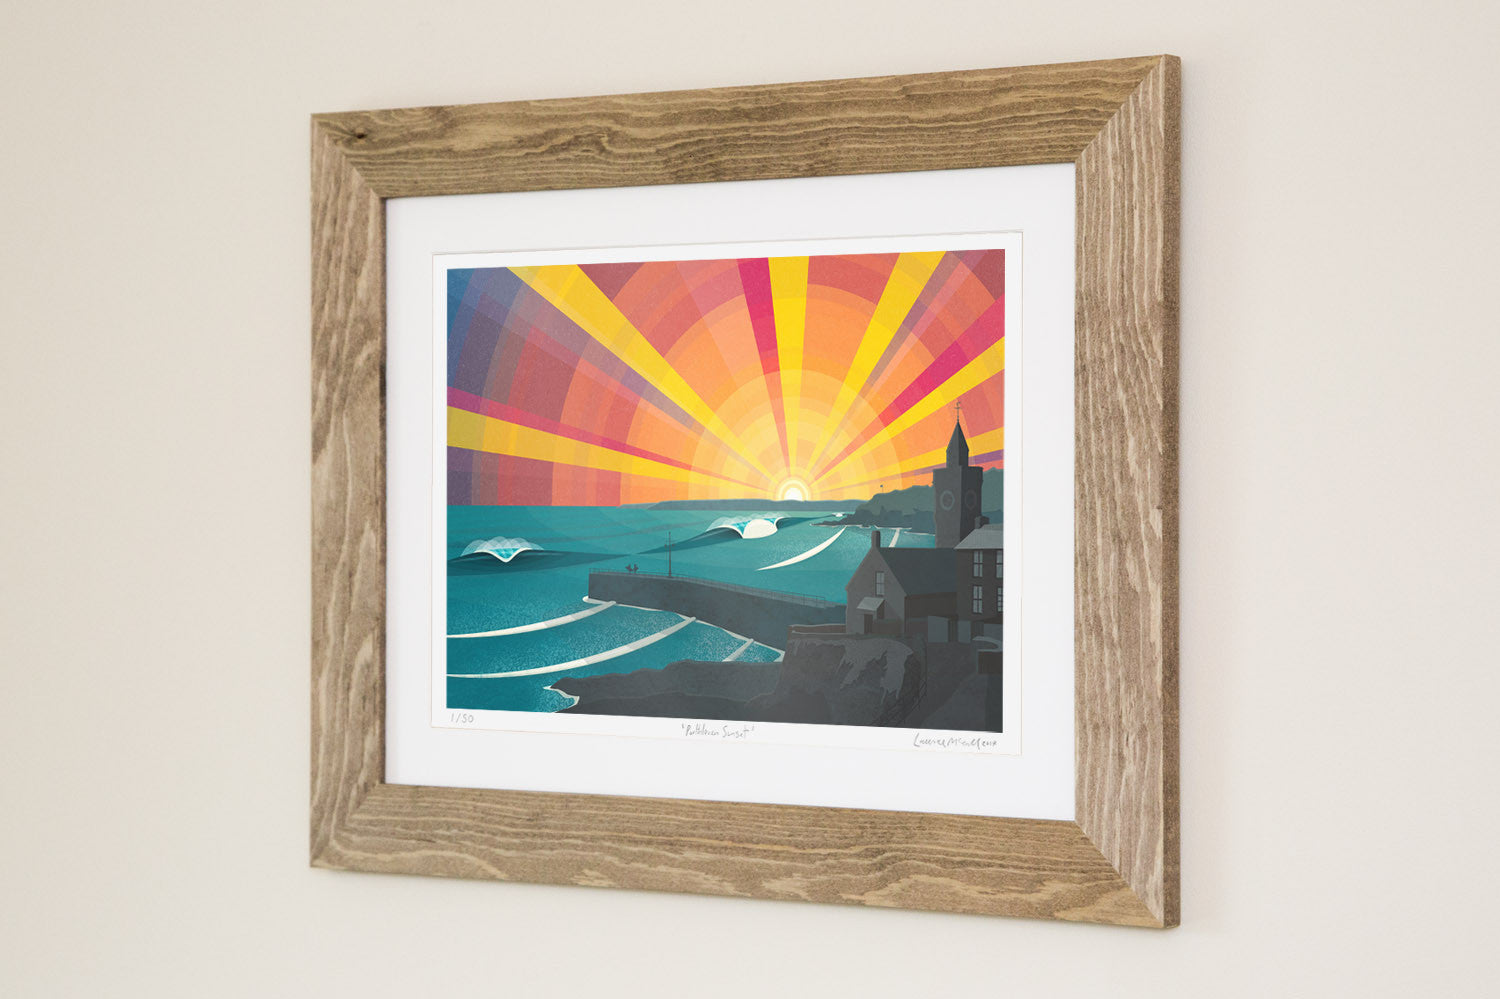 Porthleven Sunset by Laurie McCall Cornish surf artist. Limited edition print in natural wood frame.